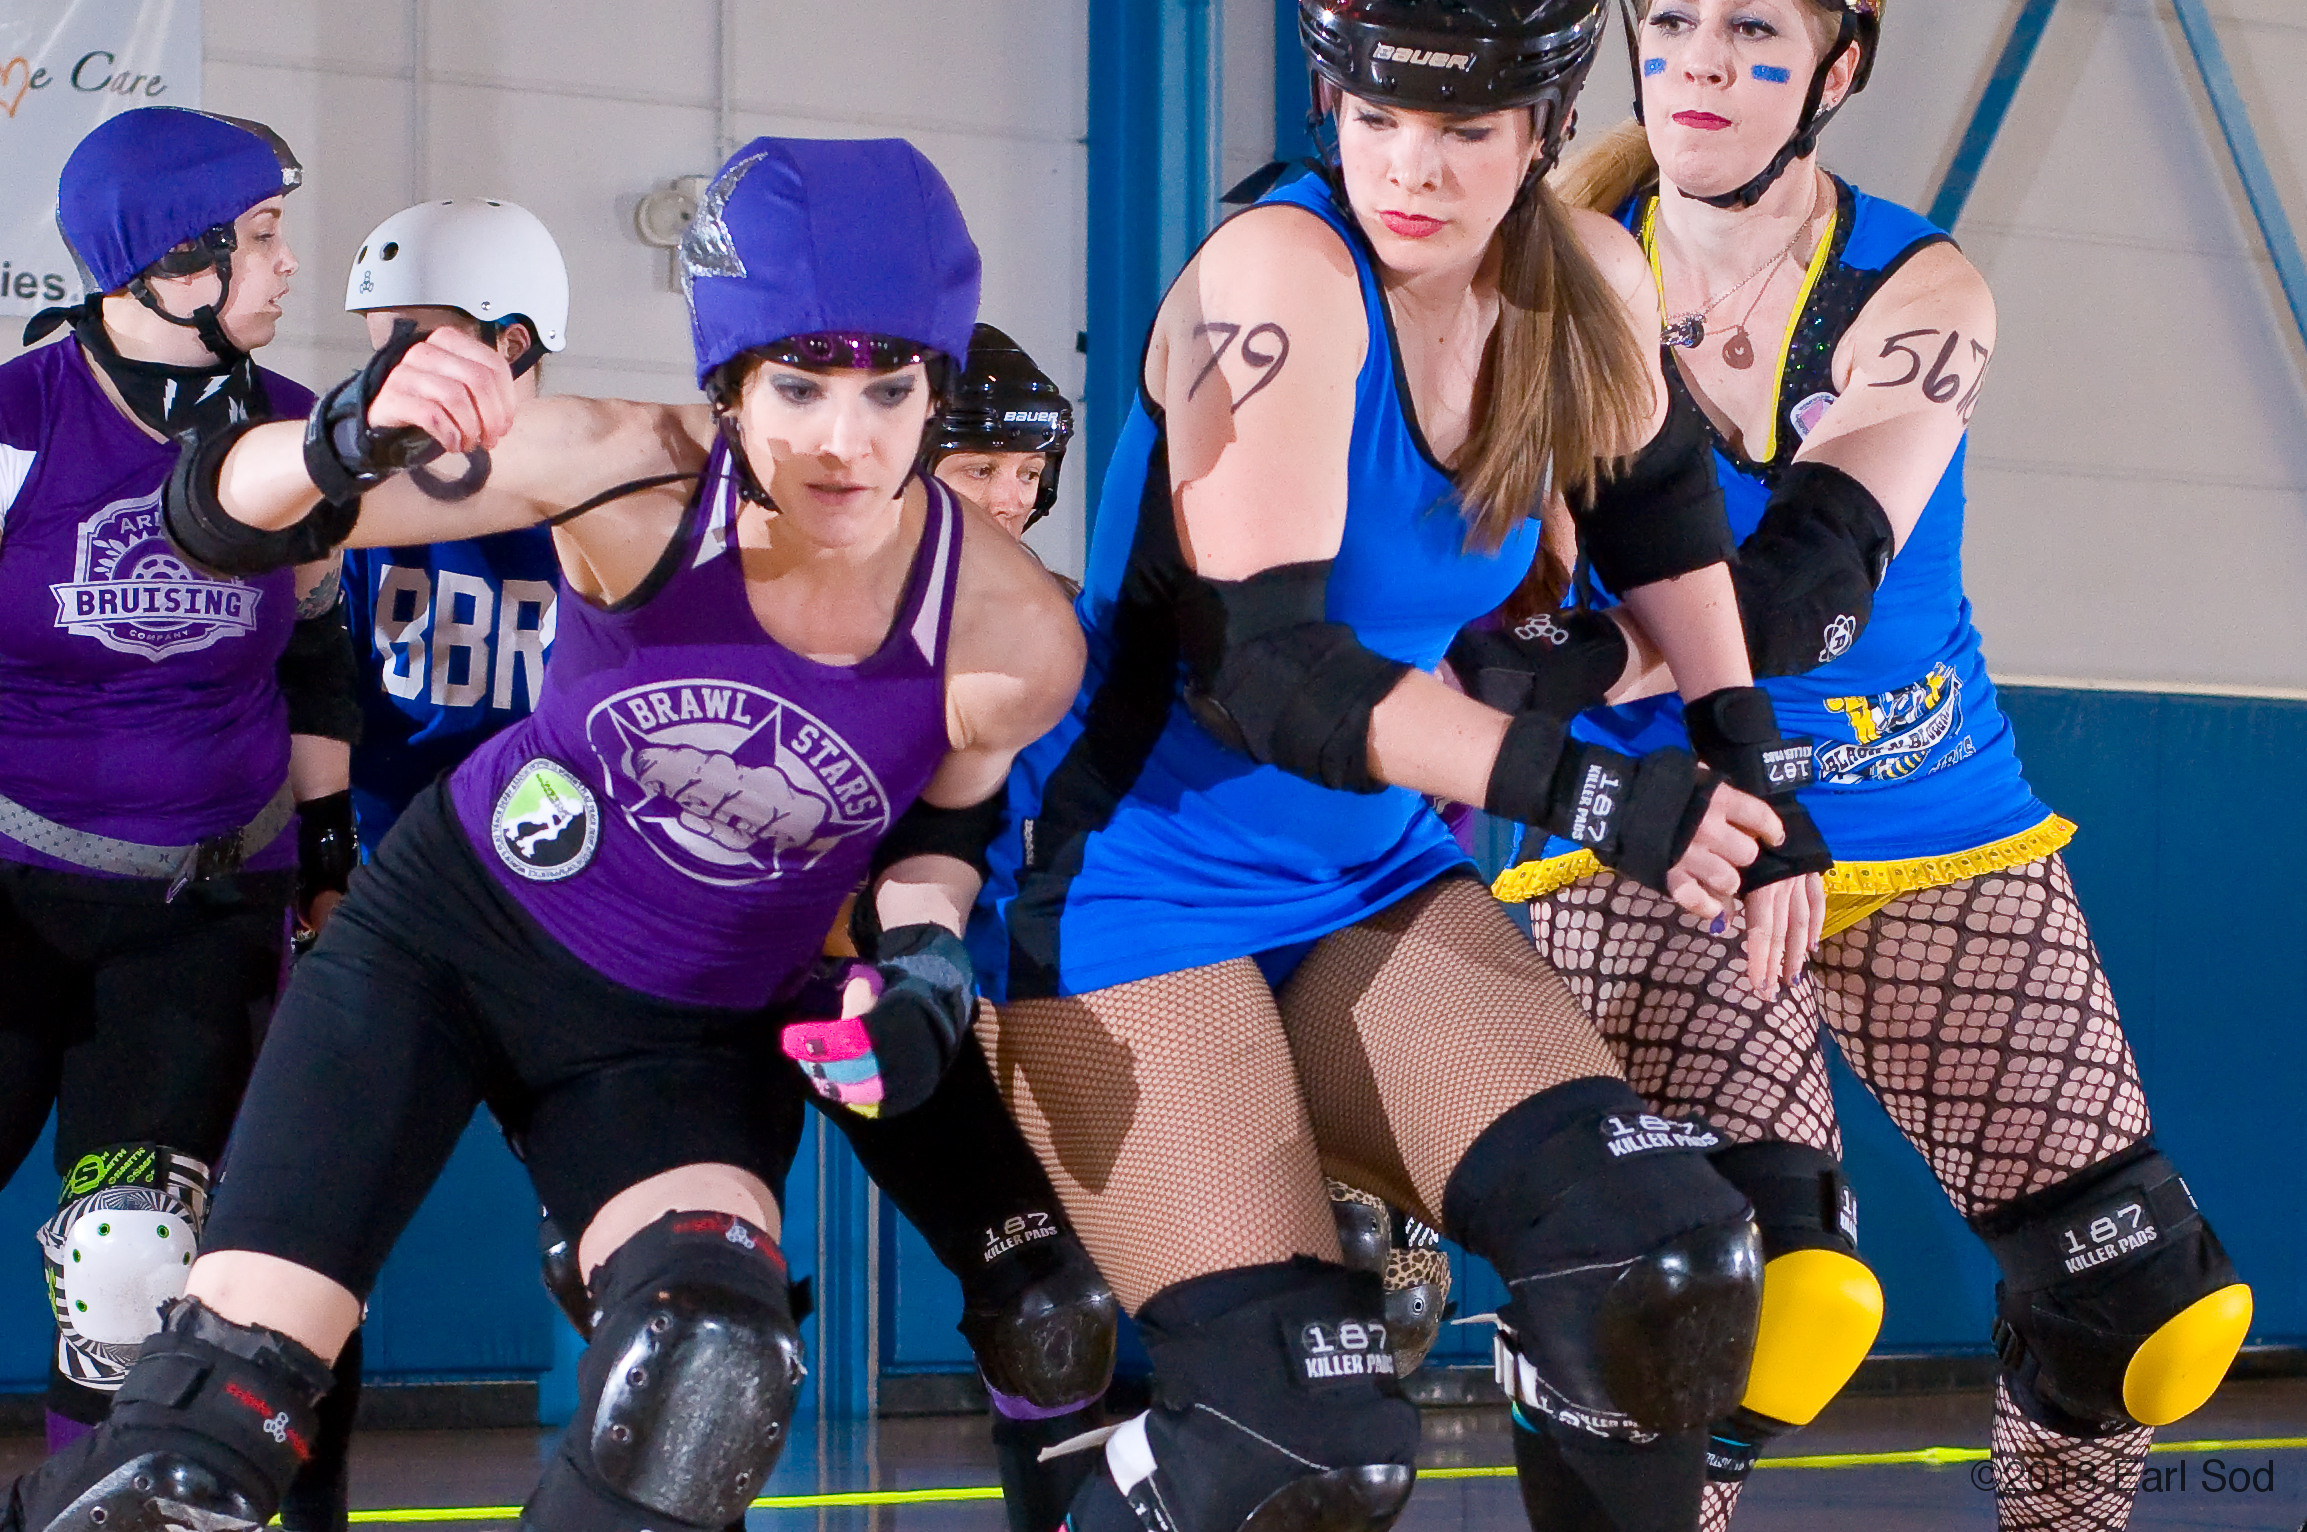 Brawlstars jammer Bex weaves through Black-n-Bluegrass' pack in an A2D2-BBRG double header April 13, 2013 in Florence, KY.( Earl Photobunny  /  Creative Commons )